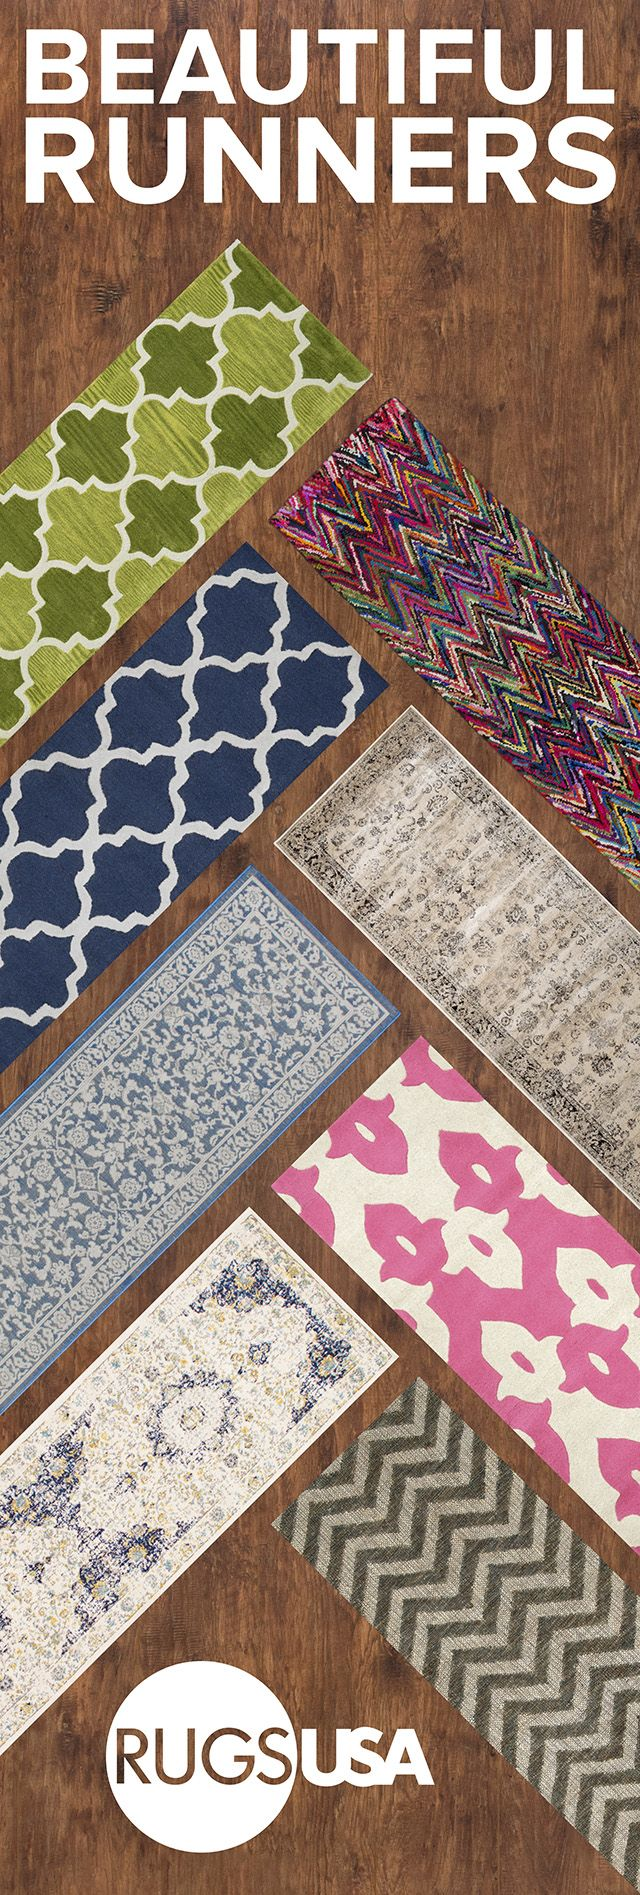 Rugs USA runners are limitless and available in a variety of styles, weaves, and material! Visit Rugs USA to fulfill your runner needs and with savings of up to 80% off!